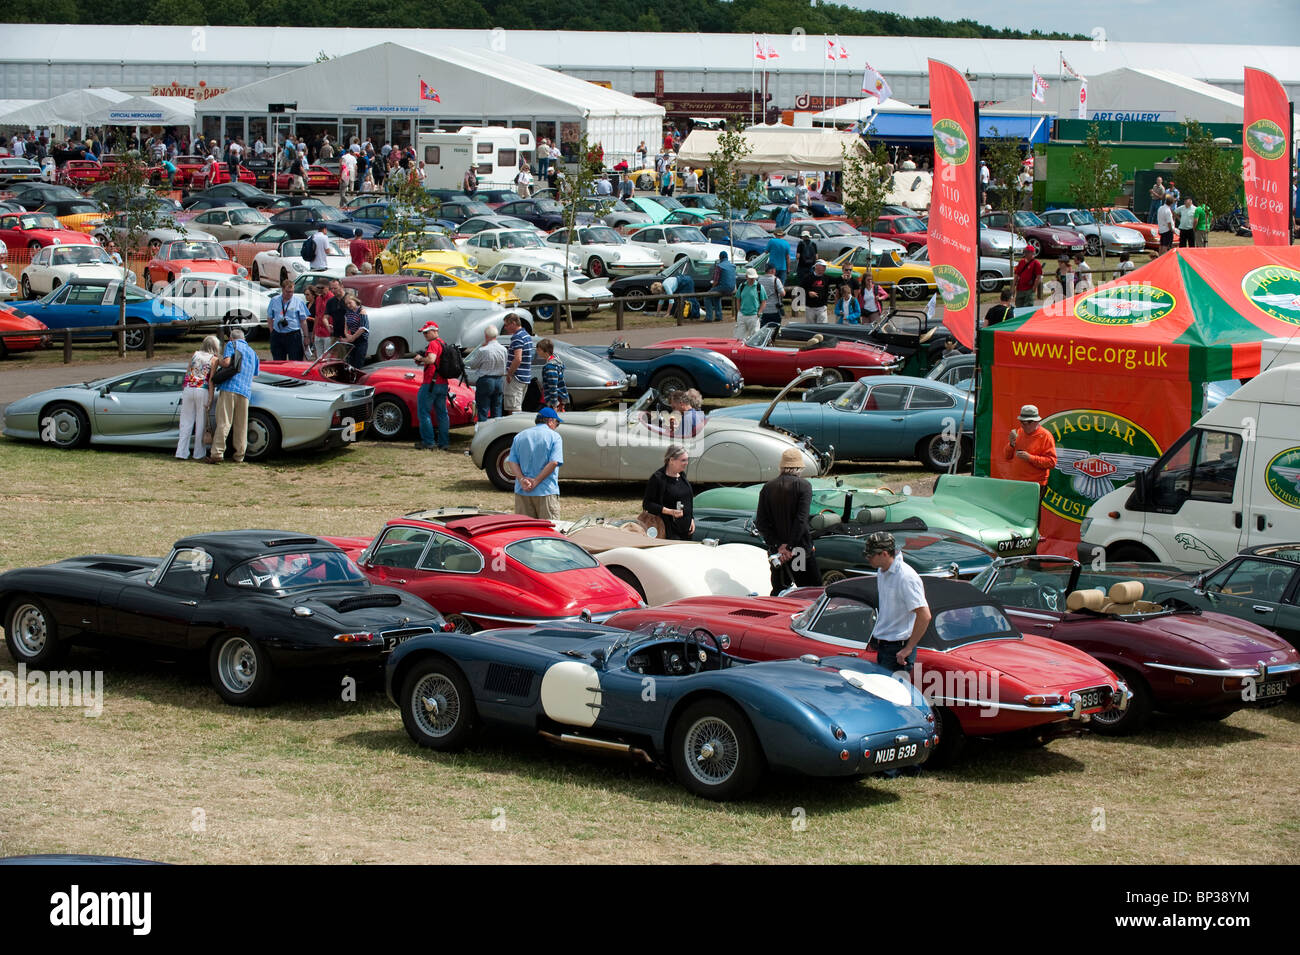 Jaguar sports cars on show at 2010 Silverstone Classic, UK - Stock Image